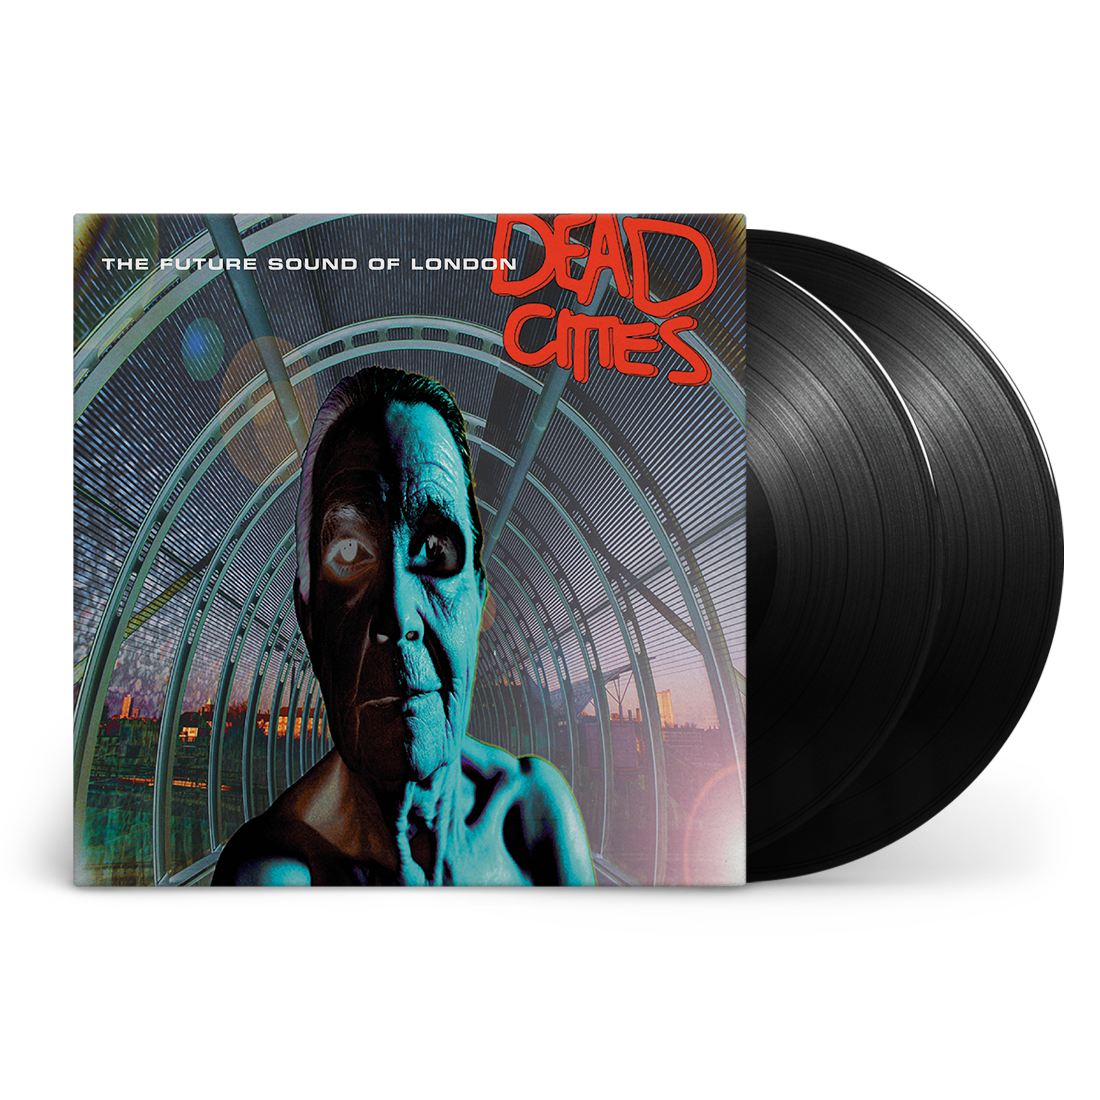 Future Sound Of London - Dead Cities 180g 2LP Vinyl Record Album